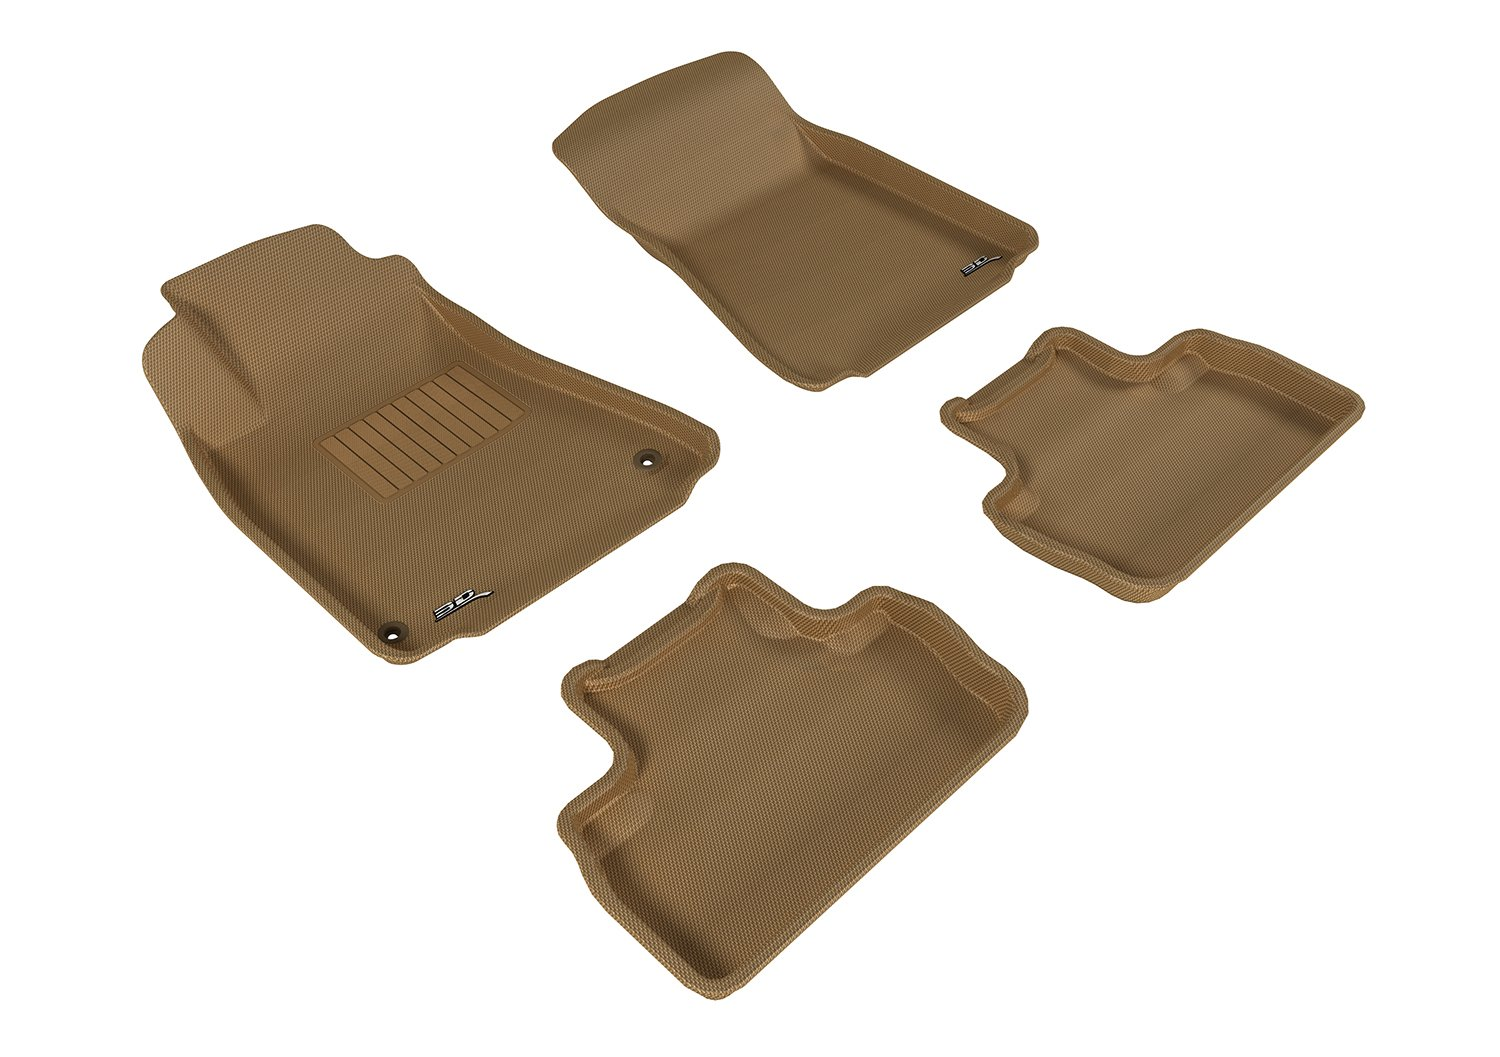 Kagu Rubber Tan L1LX00601502 3D MAXpider Complete Set Custom Fit All-Weather Floor Mat for Select Lexus Models